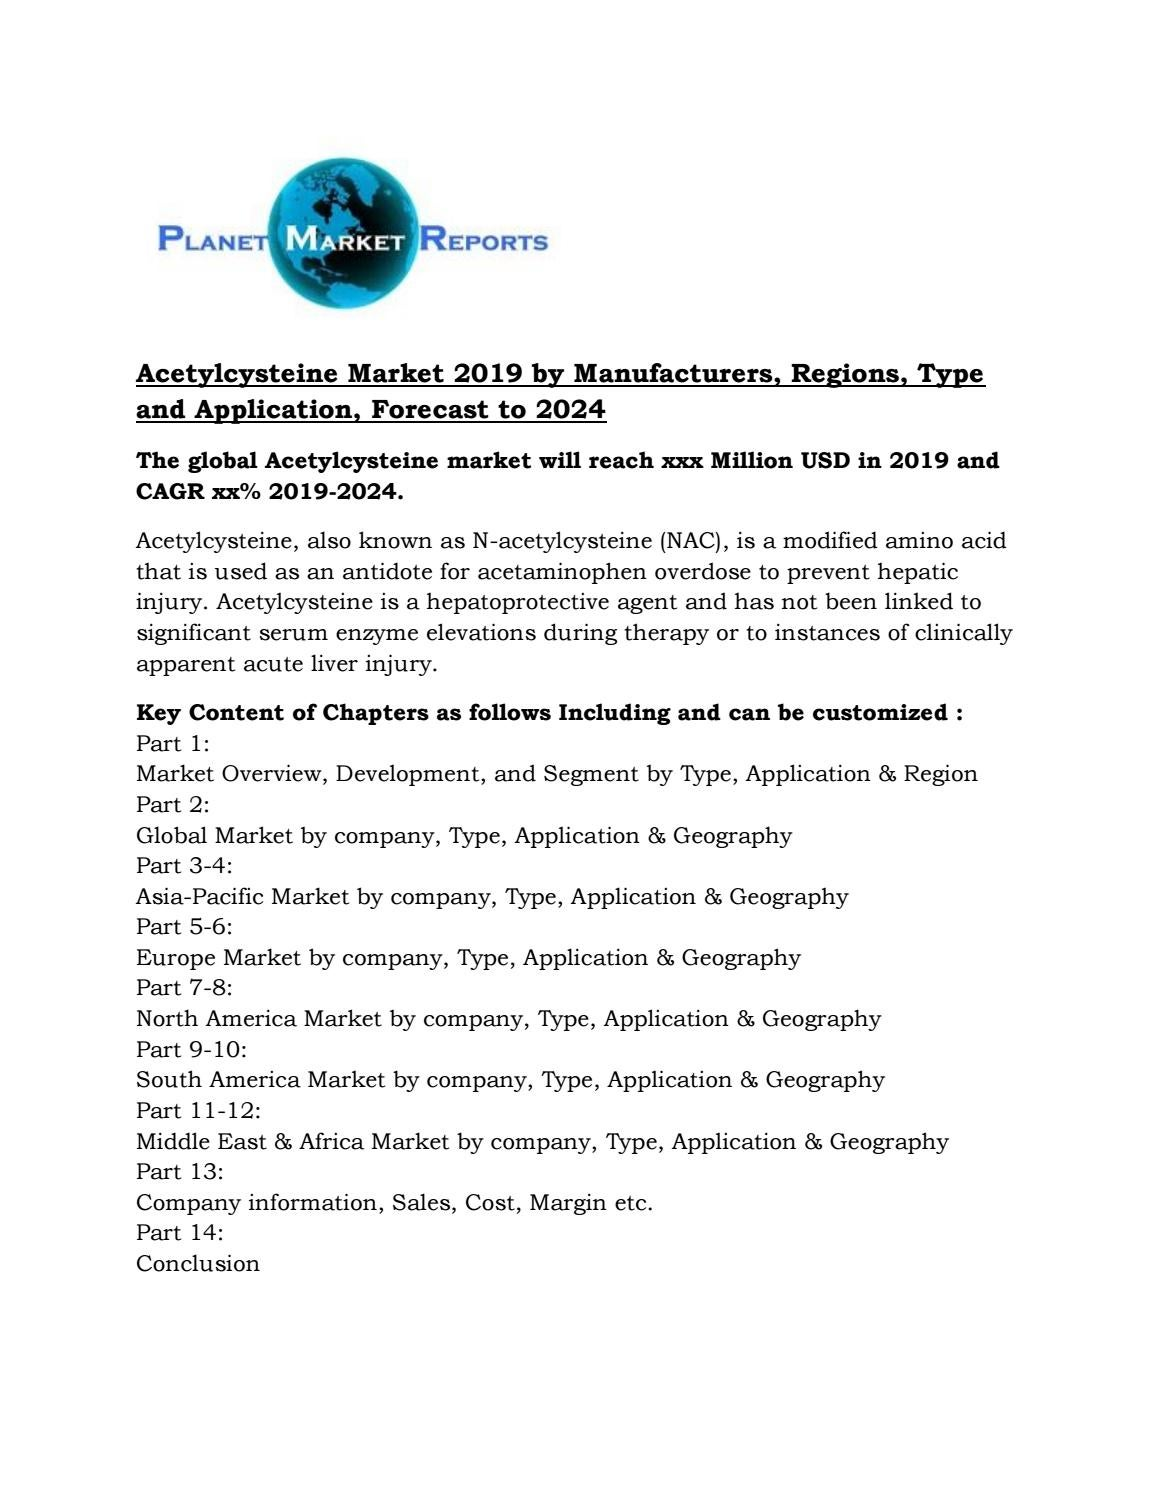 Acetylcysteine Market 2019 by Manufacturers, Regions, Type and